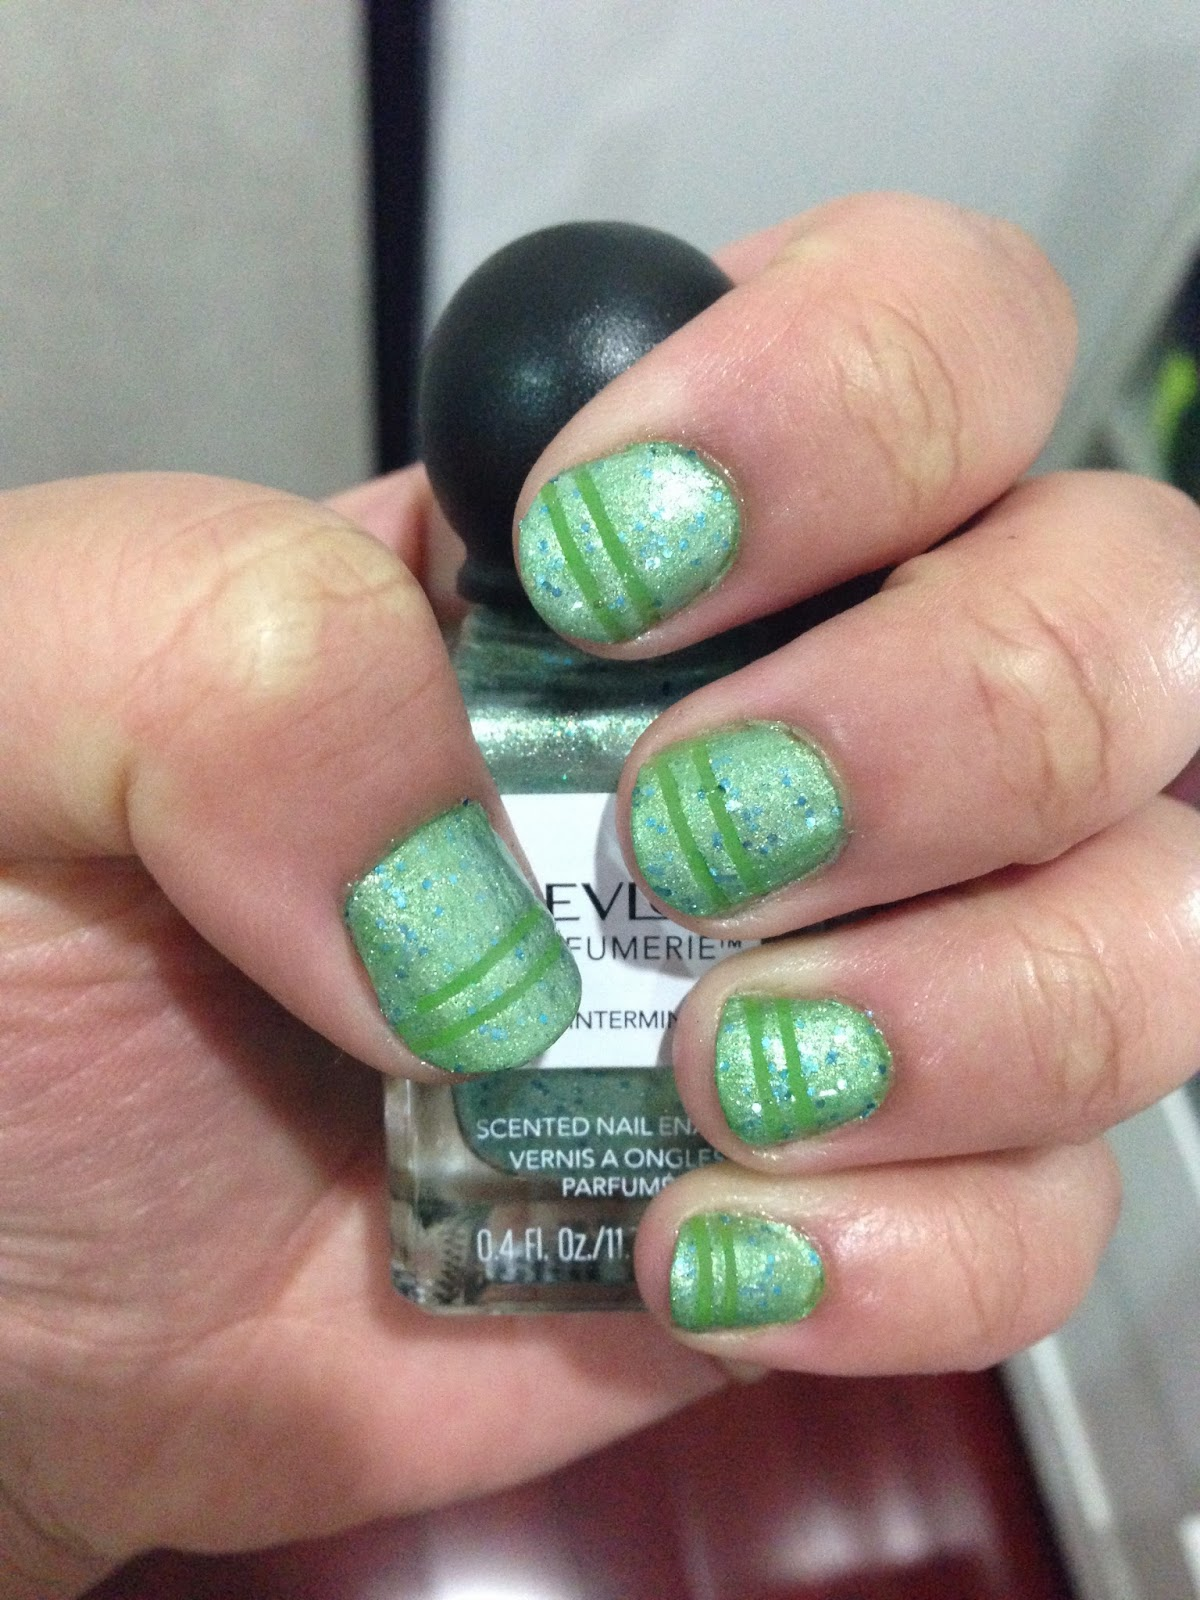 OPI Green-Wich Village and Revlon Parfumerie in Wintermint